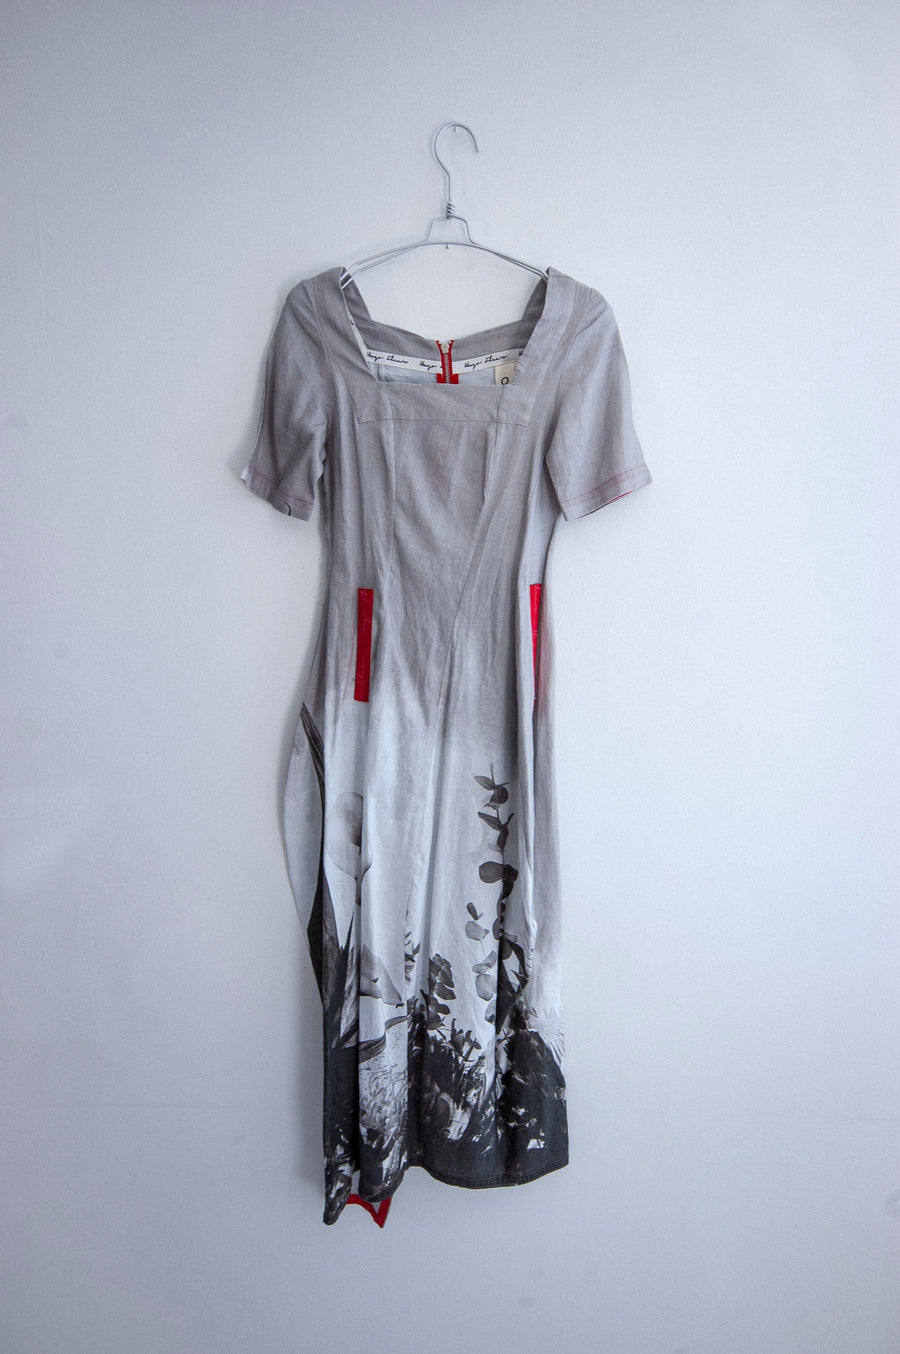 APPAREL | HELEN DRESS | GREY PROTEA PRINT | WAS R 3200